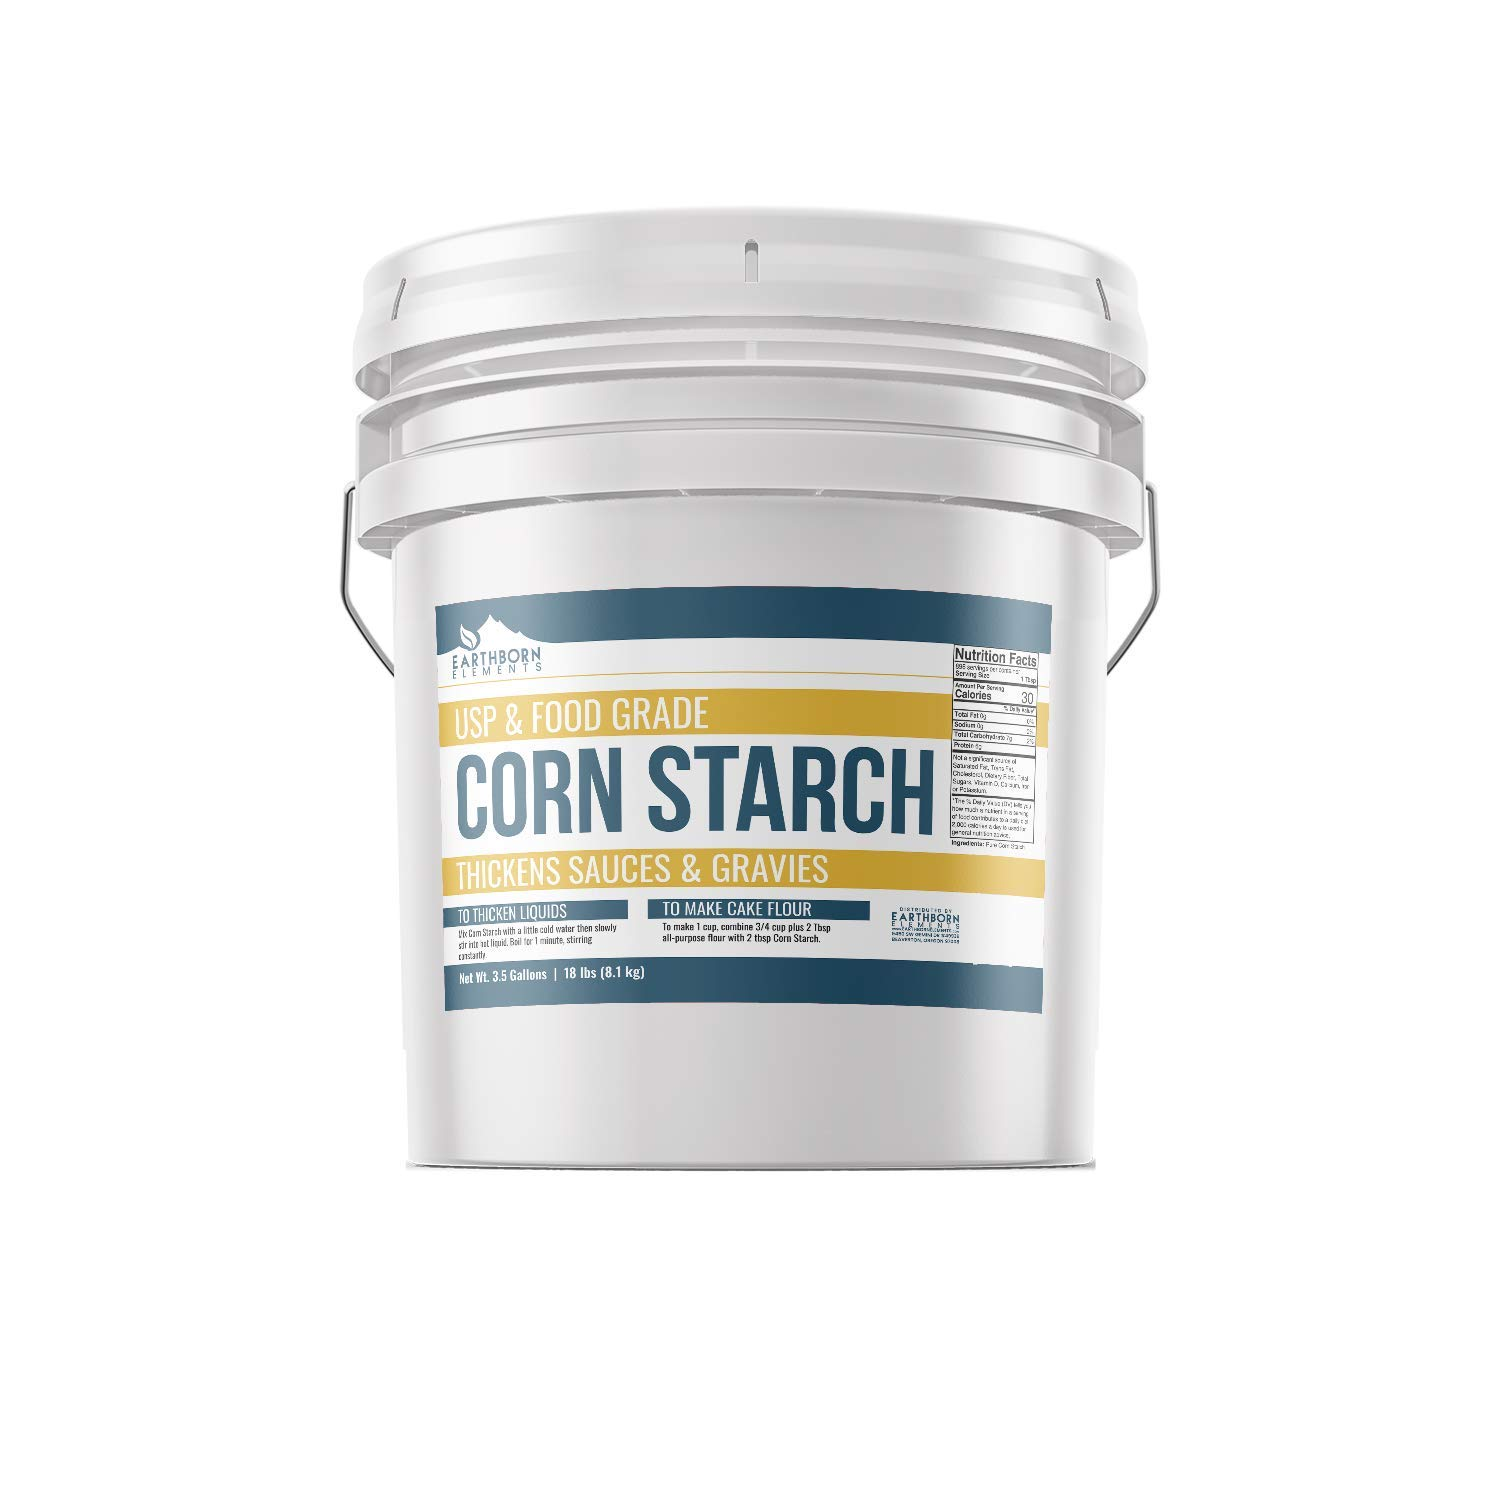 Corn Starch (3.5 Gallon (18 lb.)) by Earthborn Elements, Resealable Bucket, Thickener For Sauces, Soup, & Gravy, Highest Quality, All-Natural, Kosher, USP & Food Grade, Vegan, Gluten Free by Earthborn Elements